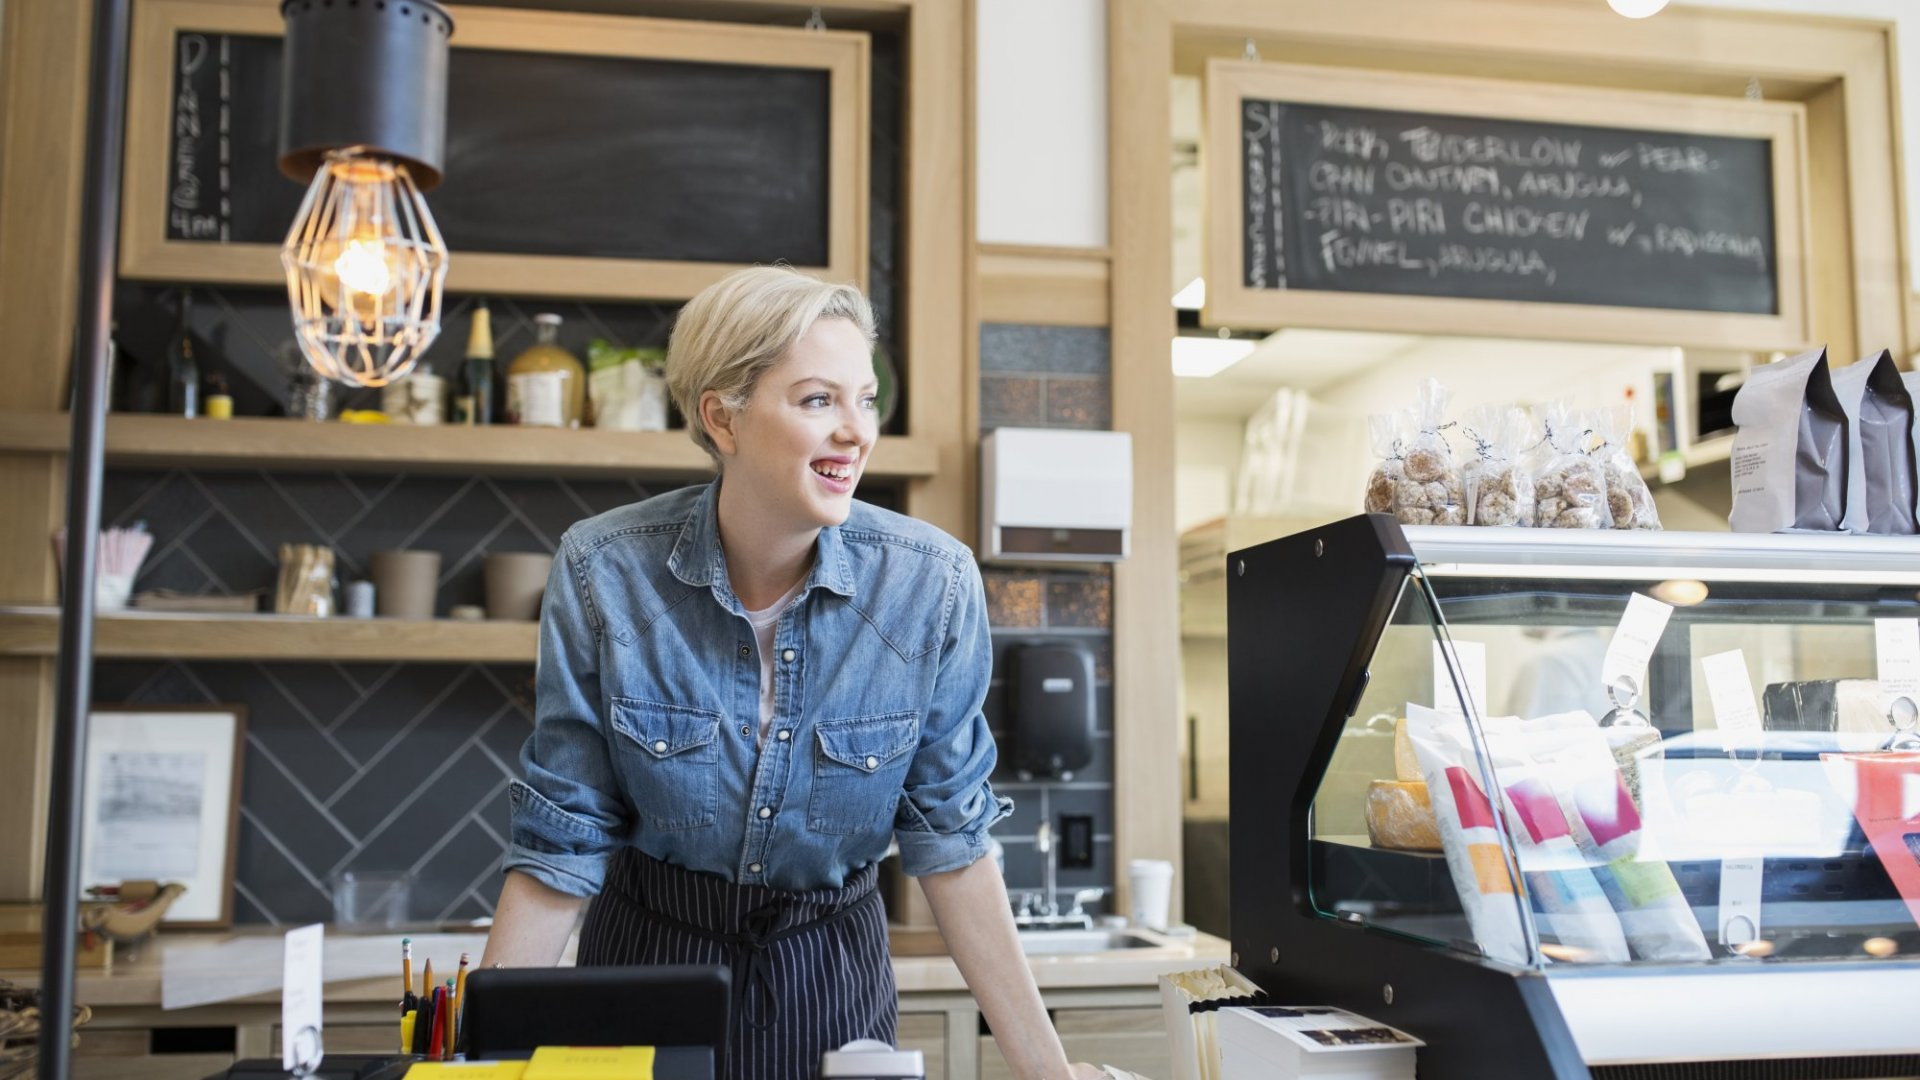 5 Tips for First-Time Franchise Owners